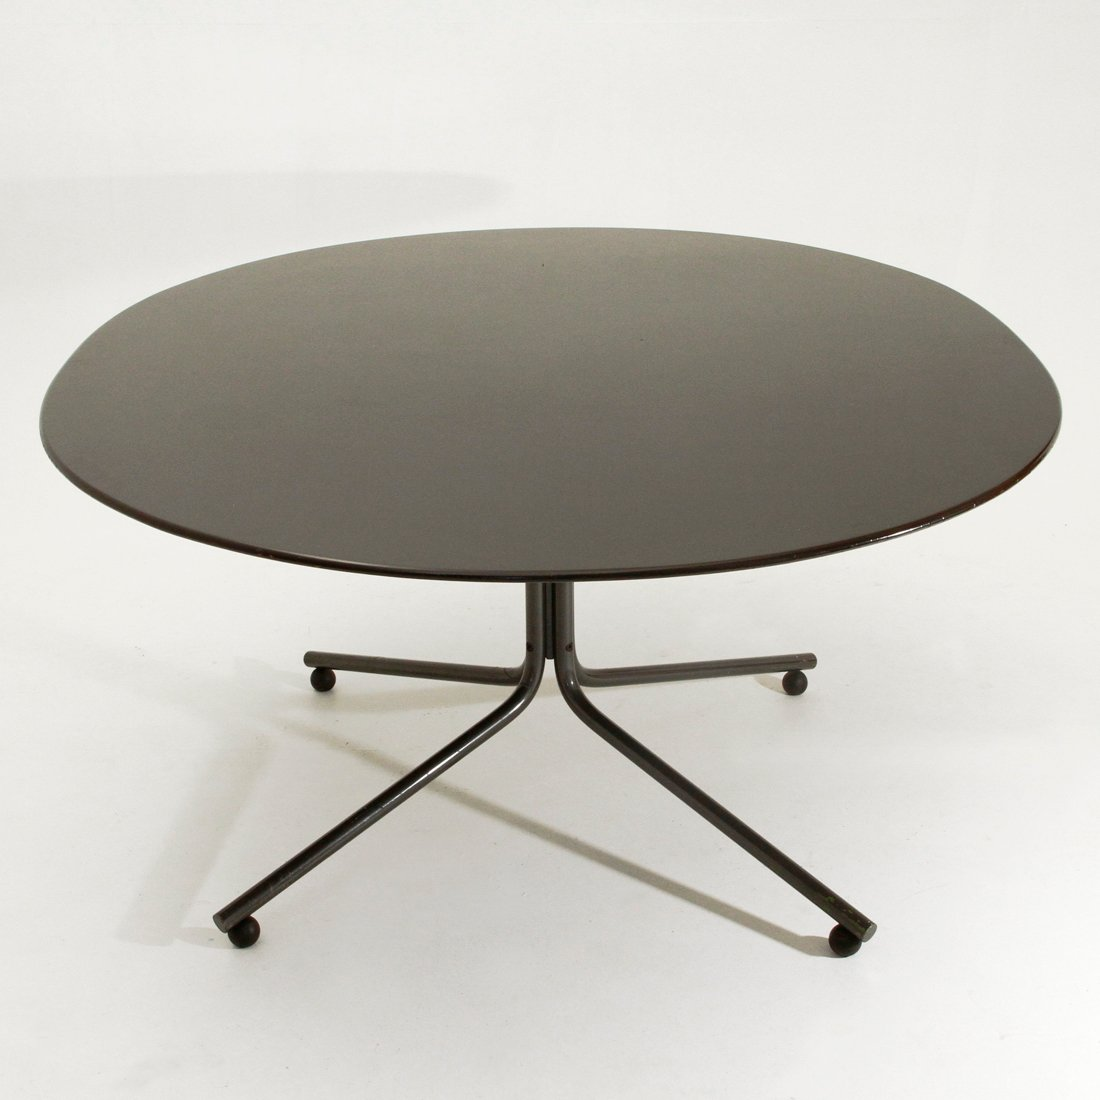 Steel Dining Table Manufacturers Images Decorating Theme